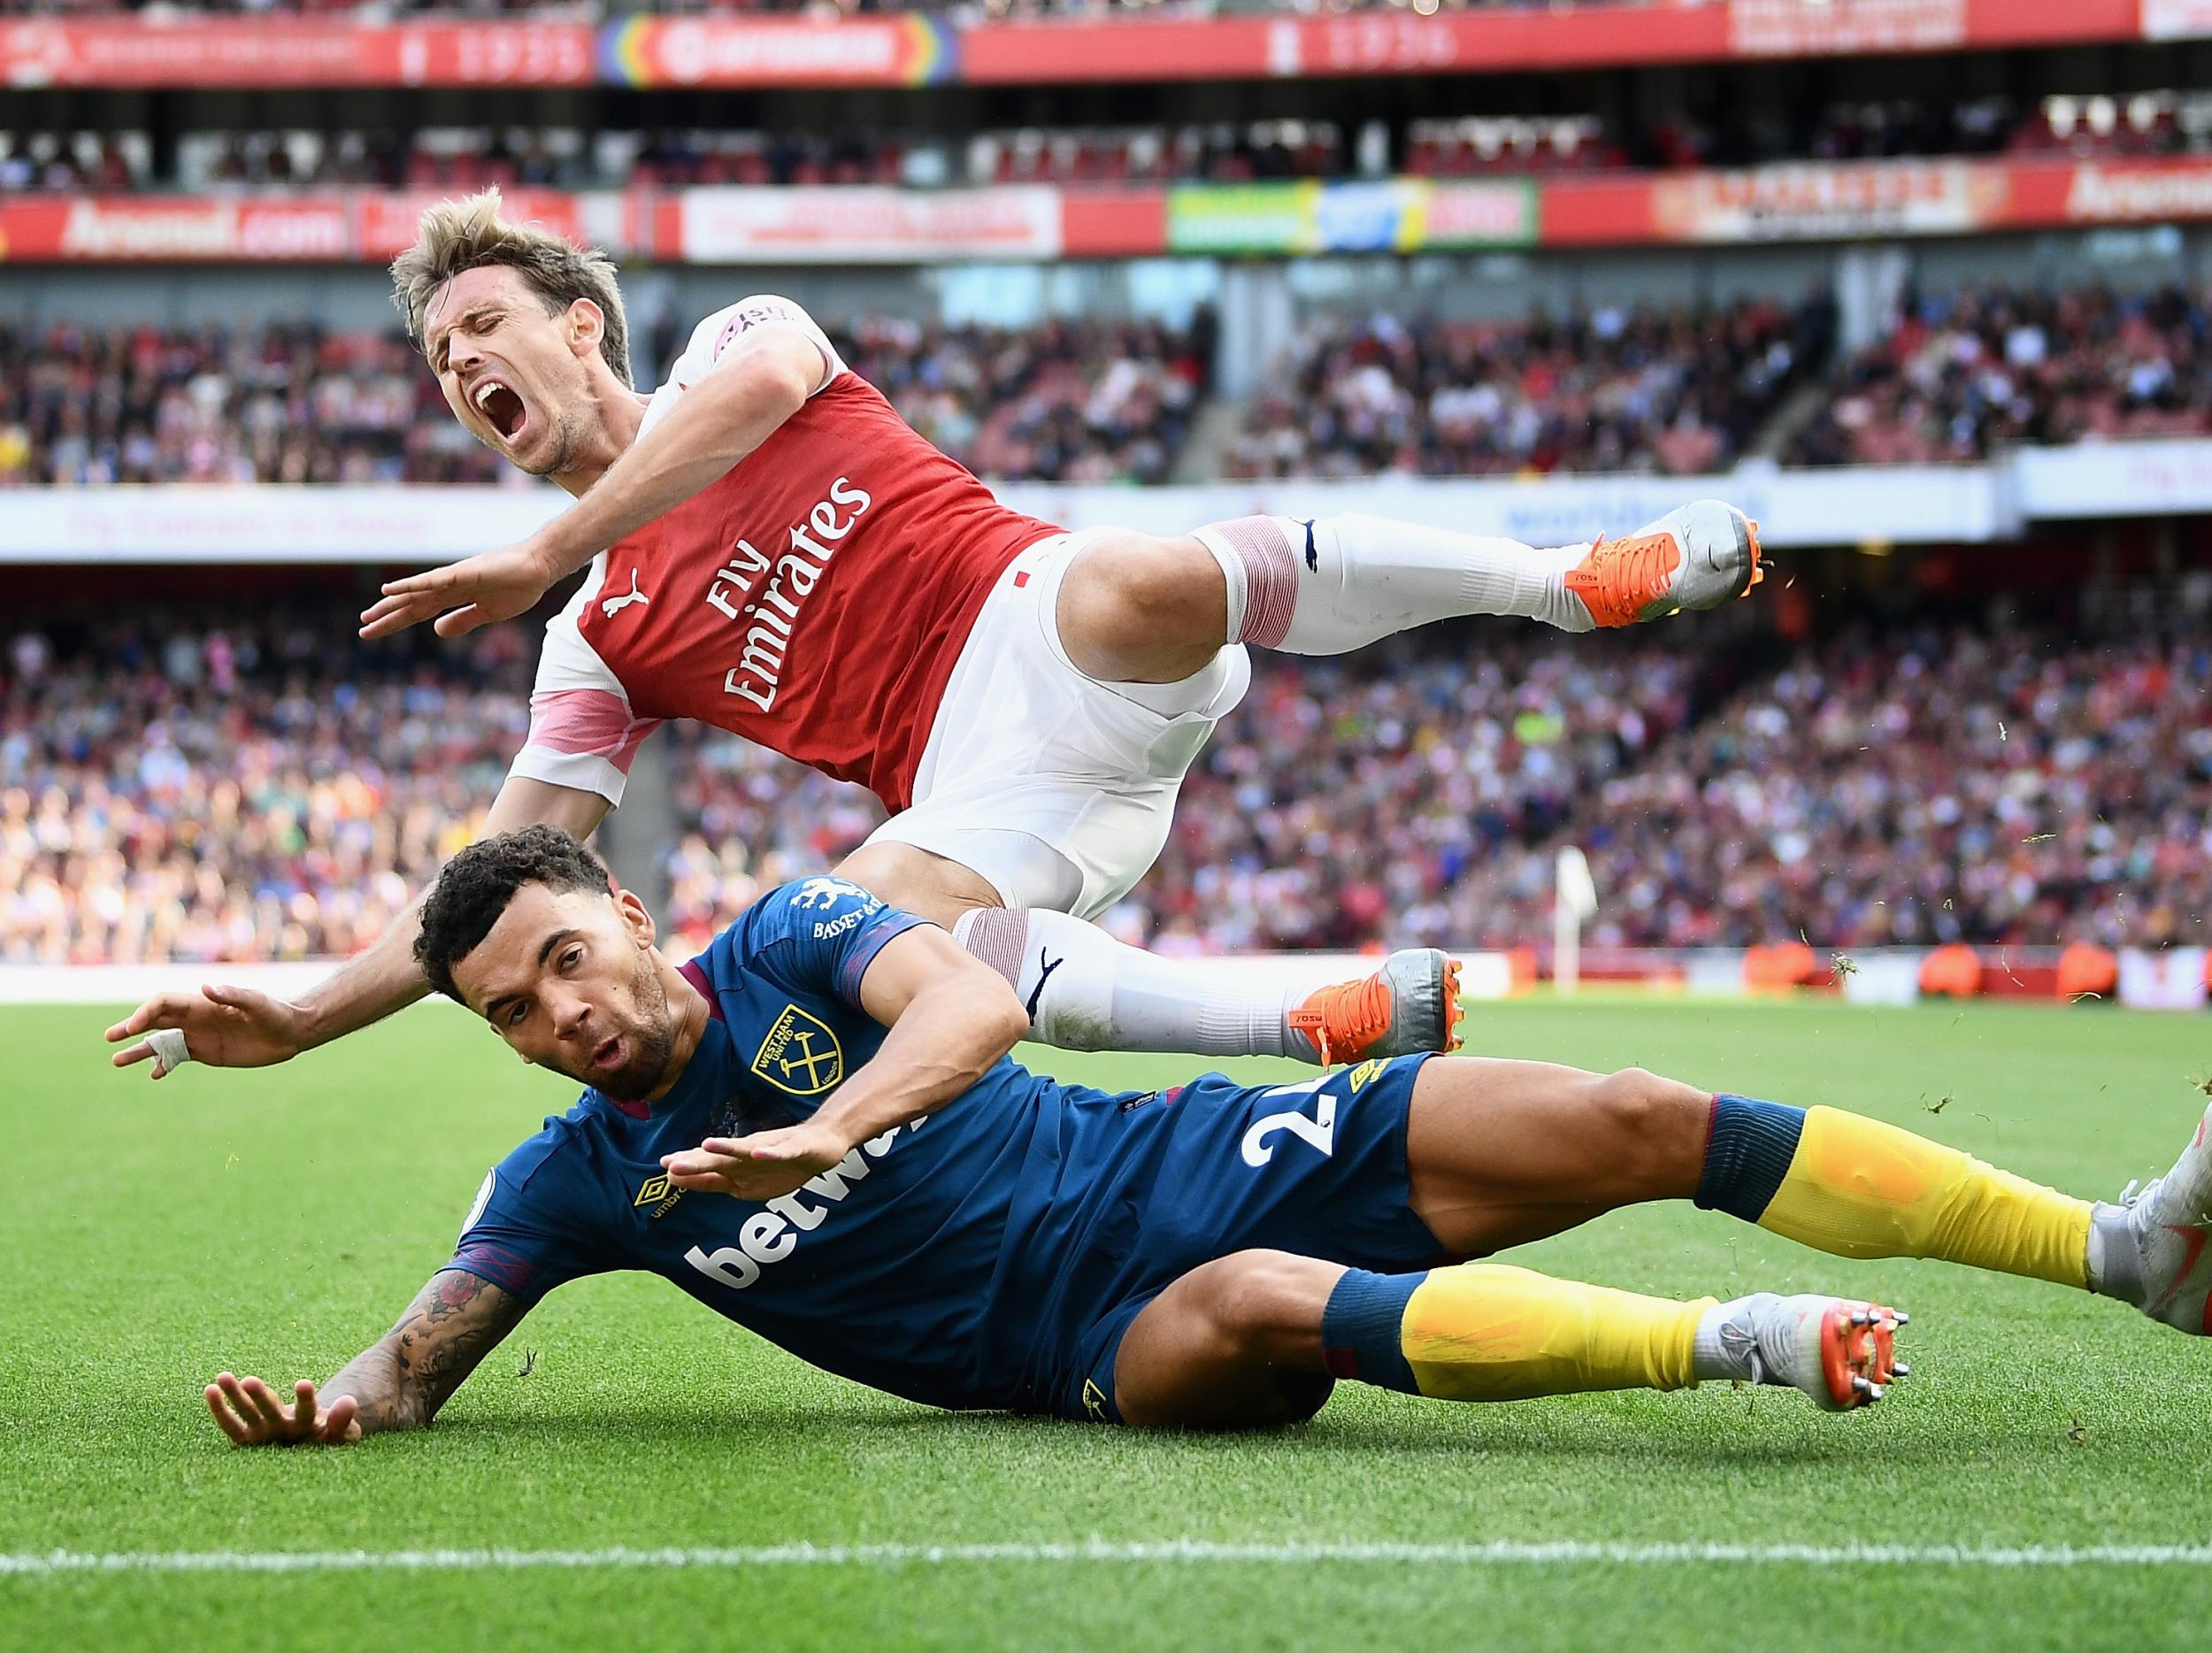 West Ham vs Arsenal prediction: How will London derby play out tonight?